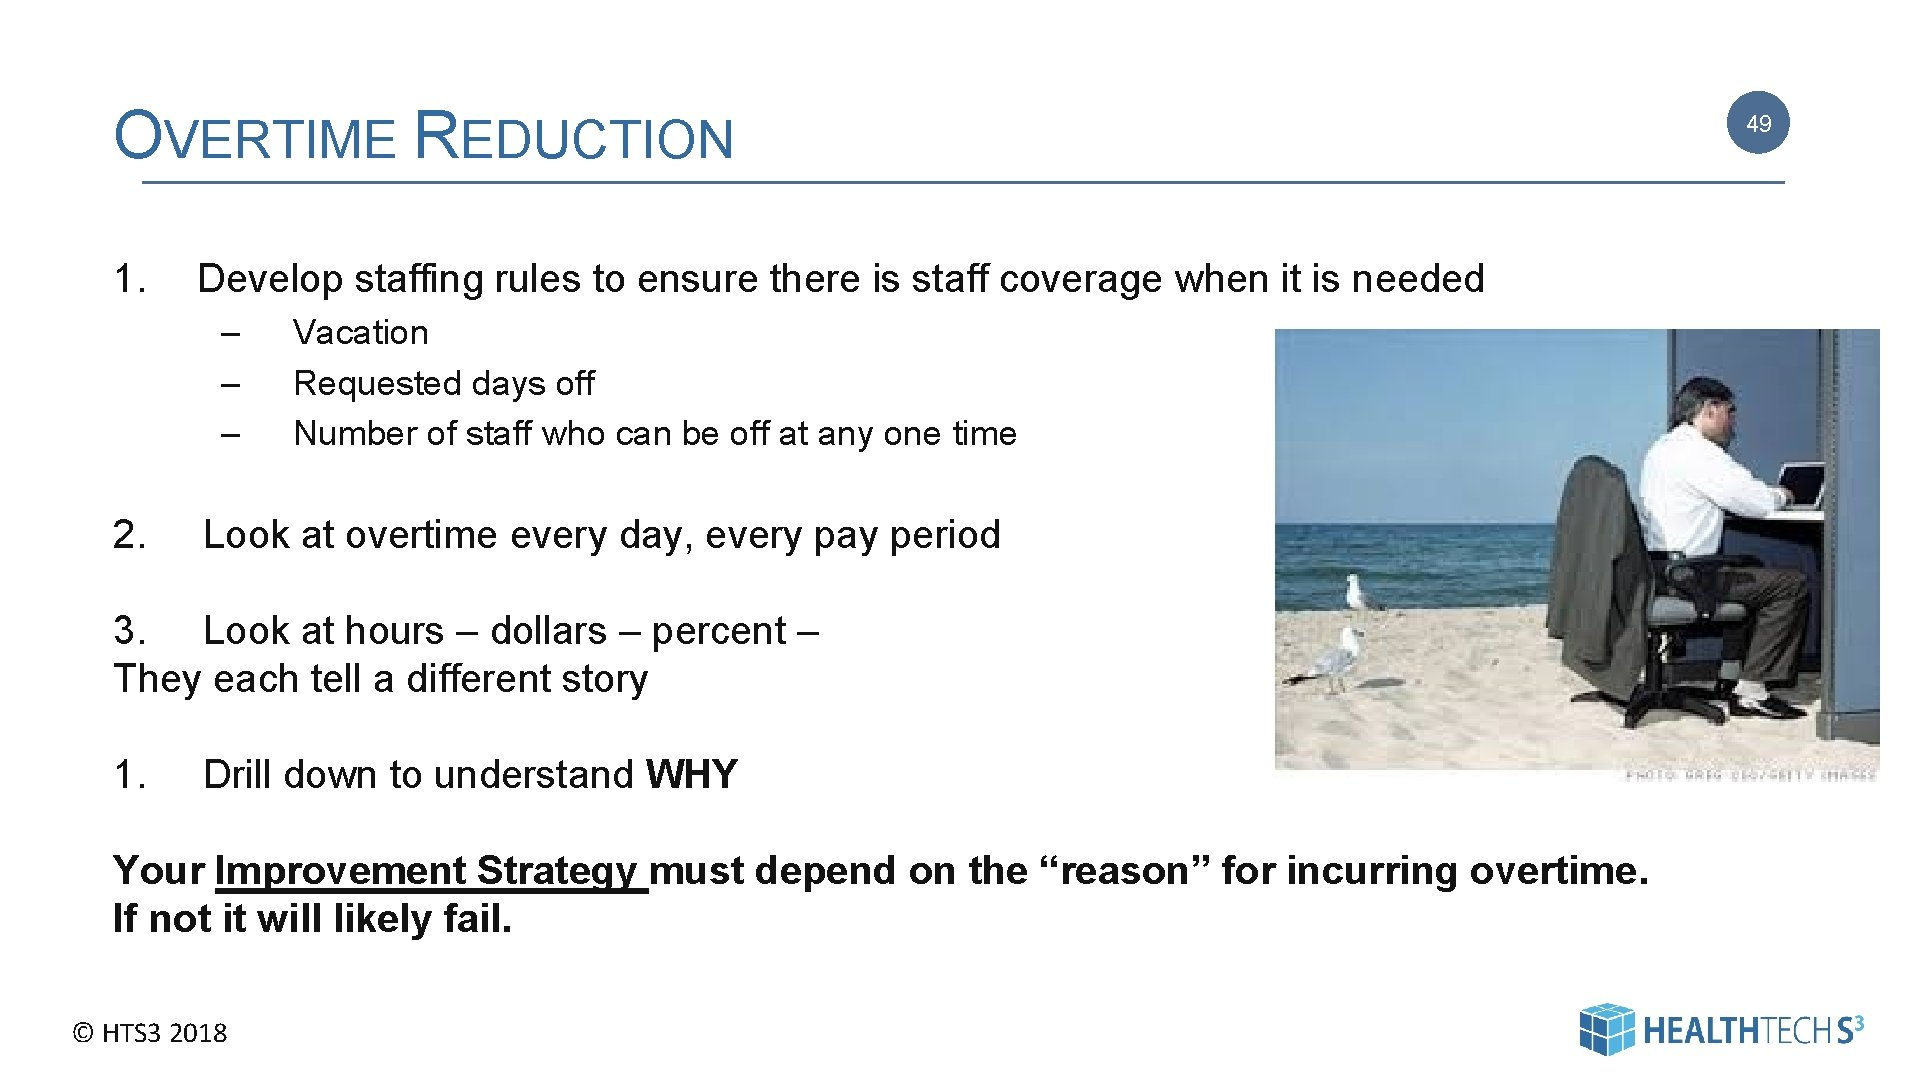 OVERTIME REDUCTION 1. Develop staffing rules to ensure there is staff coverage when it